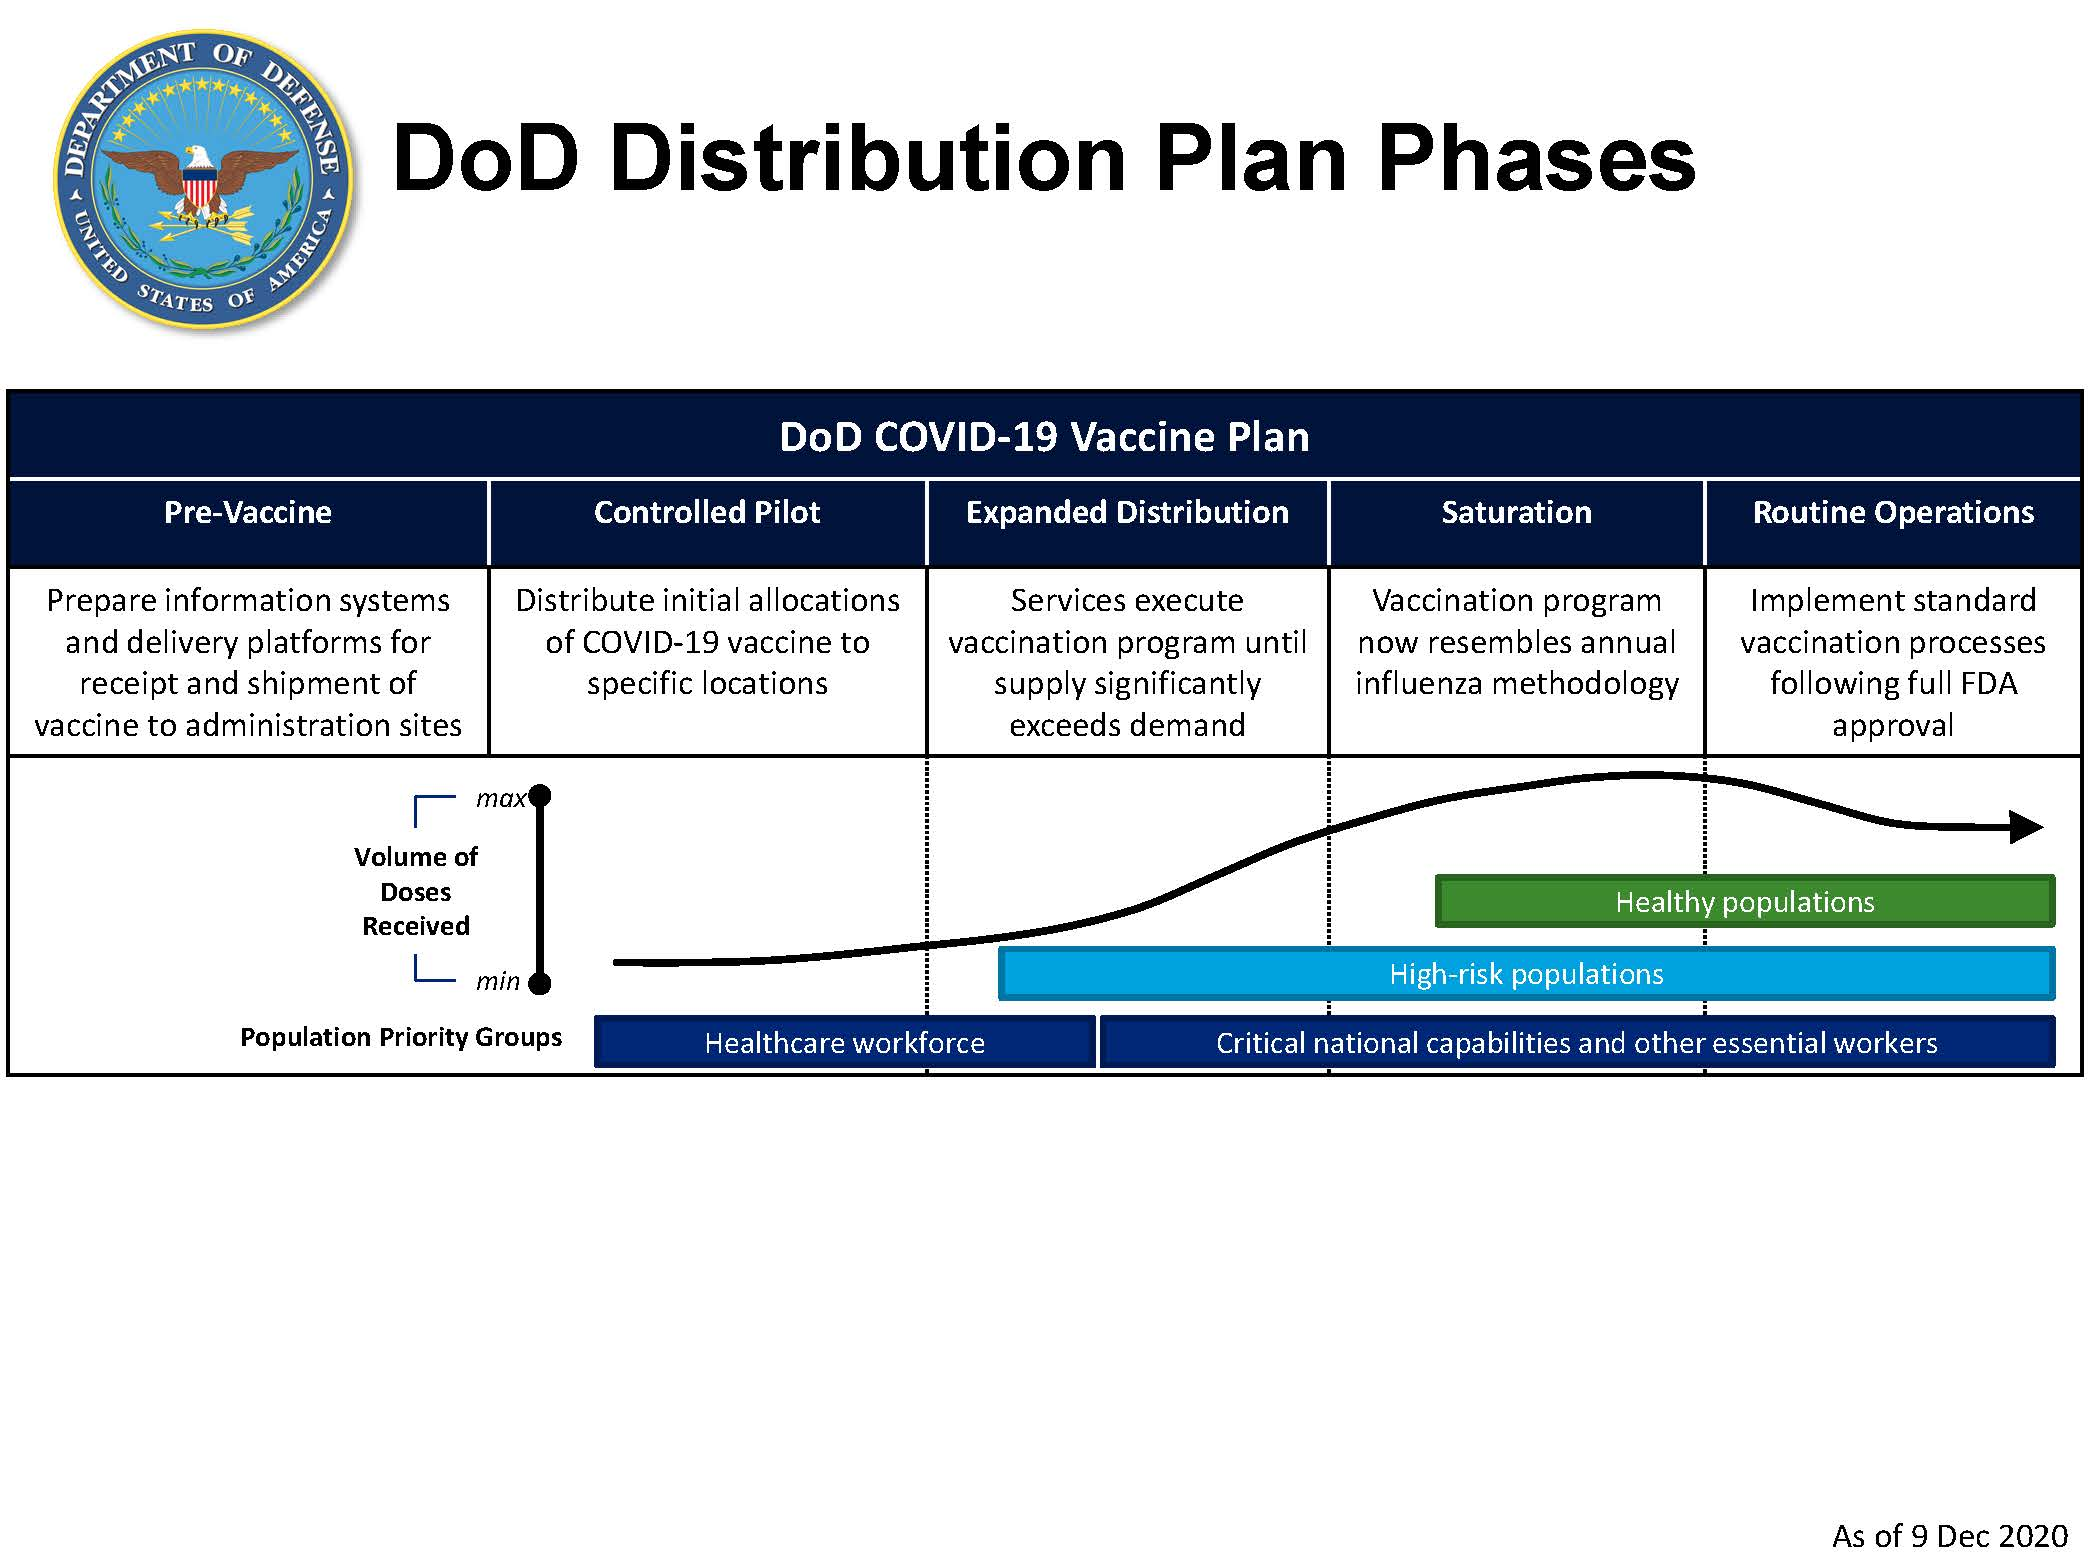 DOD Distribution Plan Phases